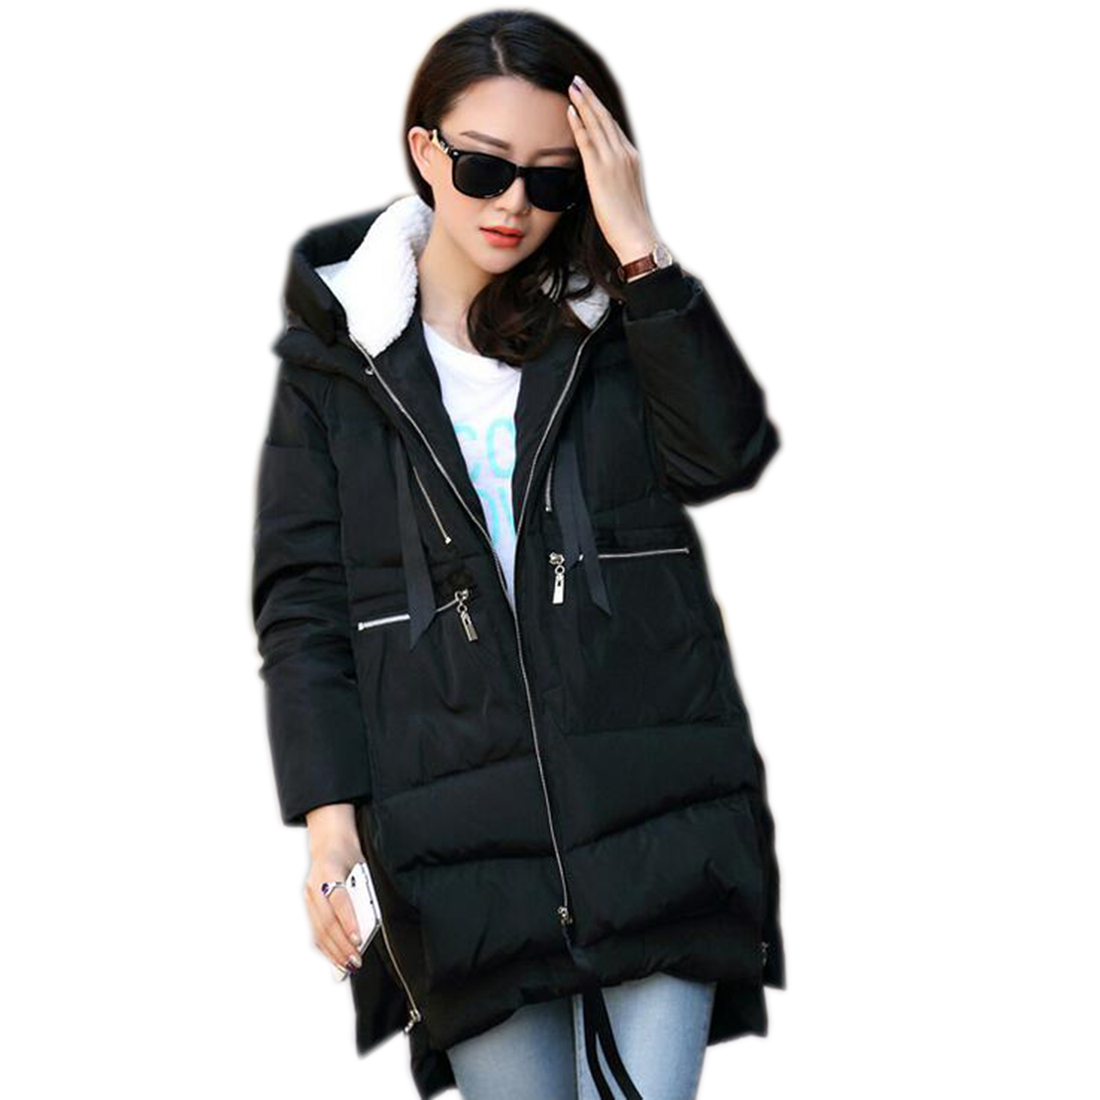 Army Green Long warm Coats Women Full-Sleeved Padded Warm Jackets 2017 Fashion Elegant Hooded Winter Coats Outwear Zipper UpОдежда и ак�е��уары<br><br><br>Aliexpress